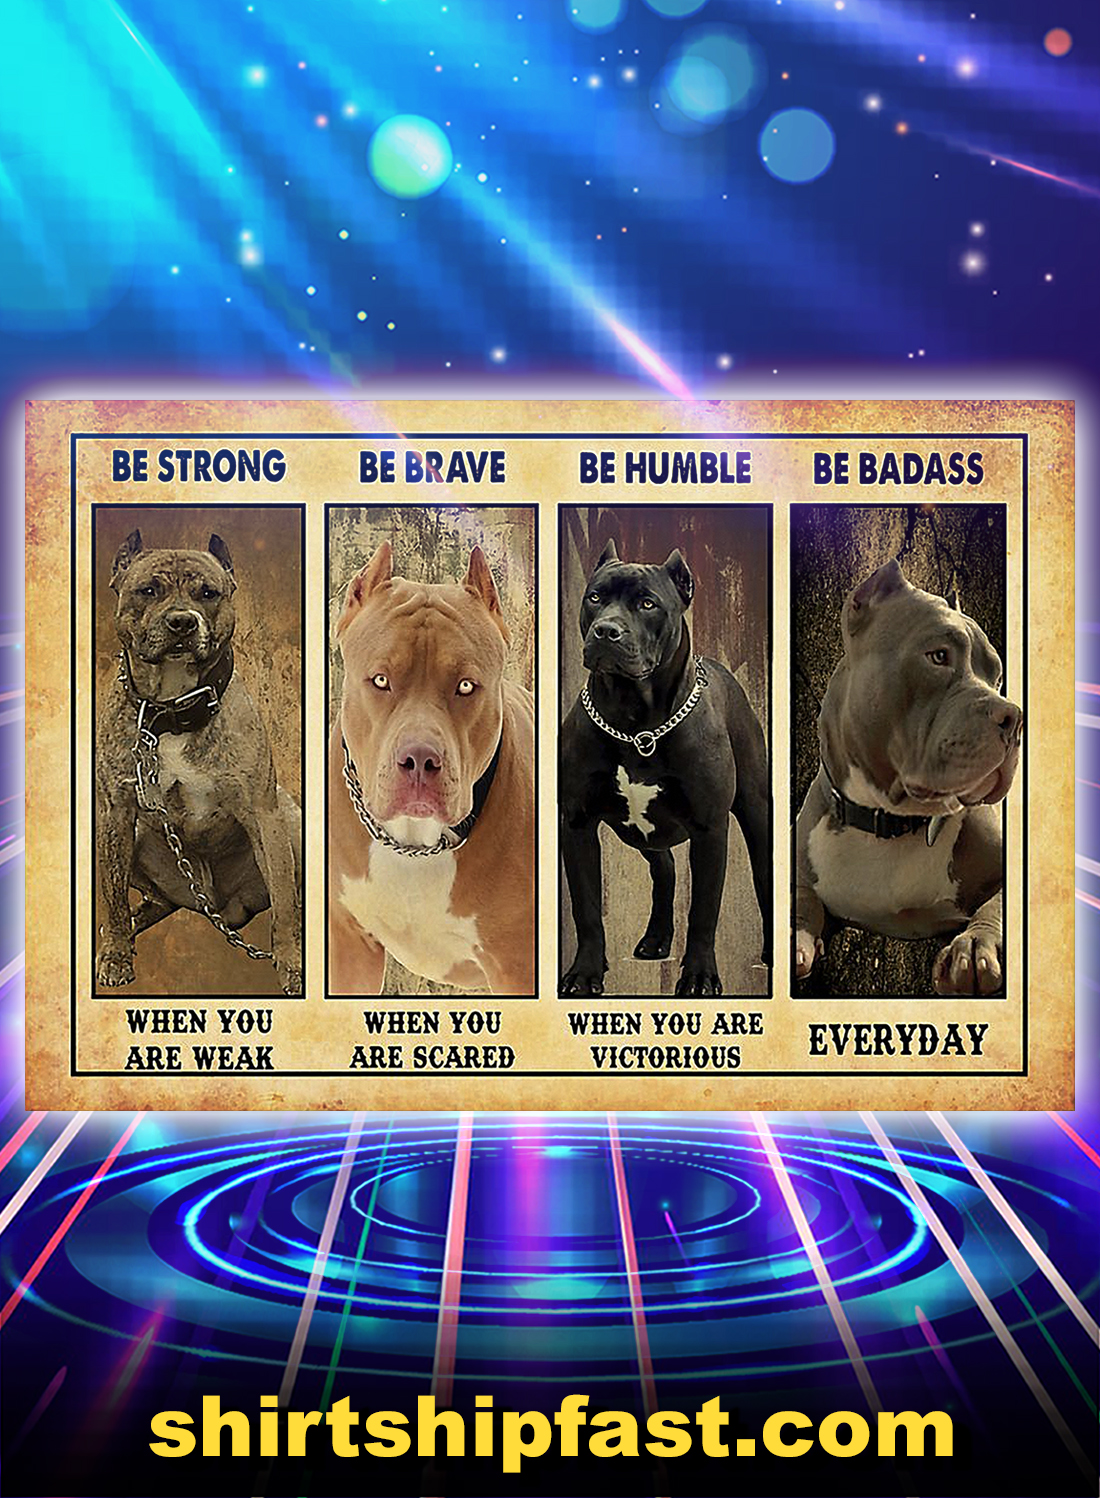 Pitbull be strong be brave be humble be badass poster - A4